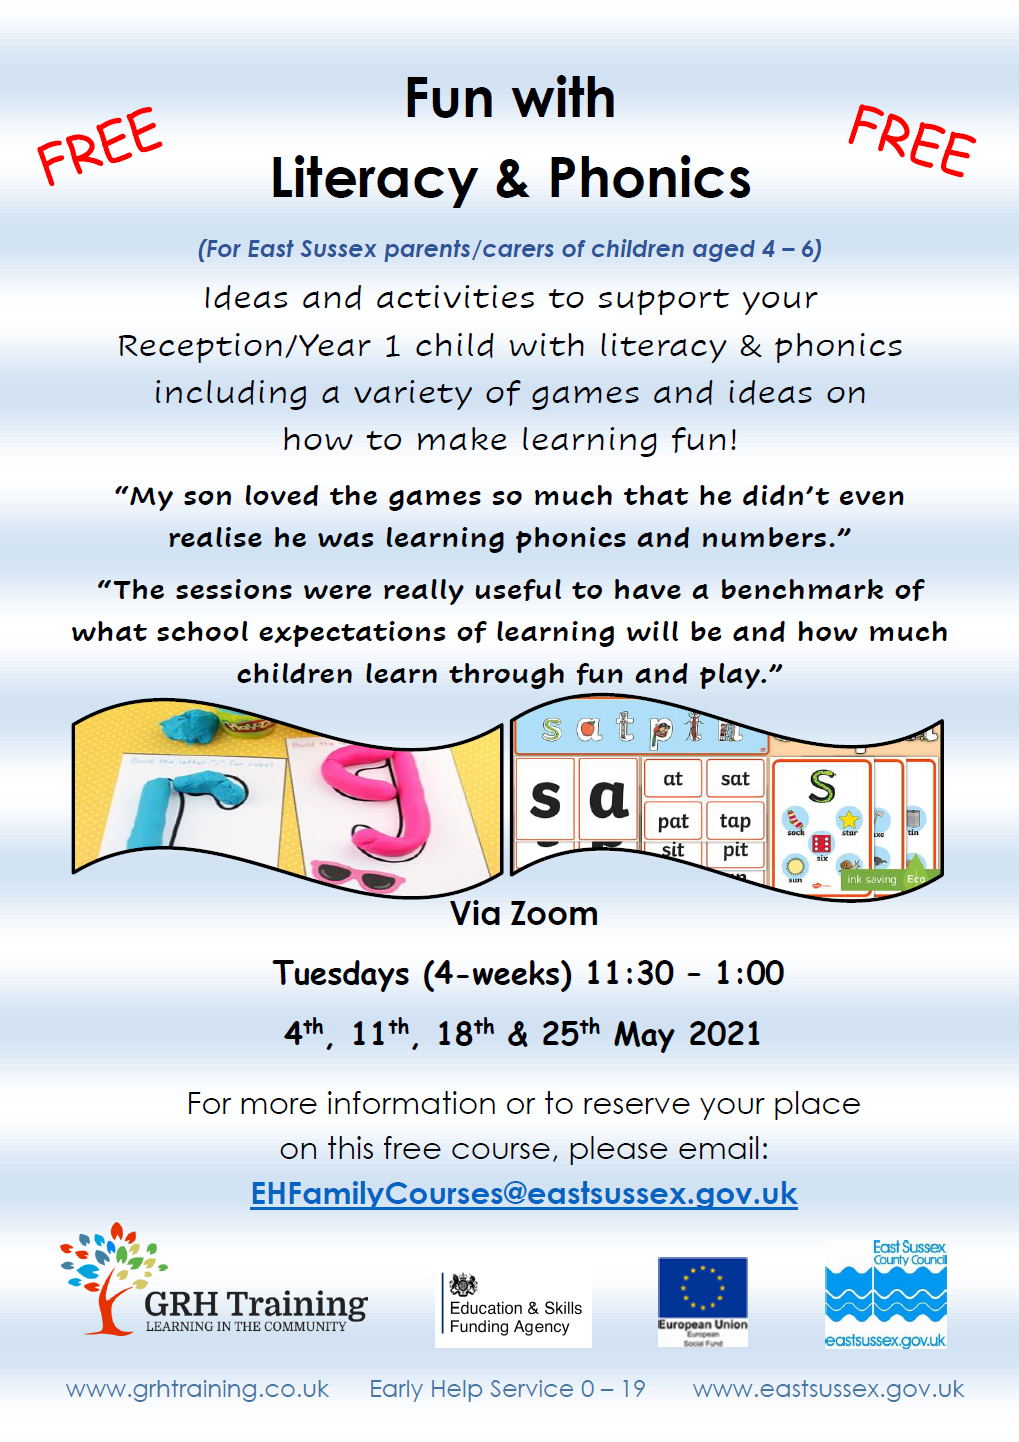 GRH Training – Fun with Literacy & Phonics